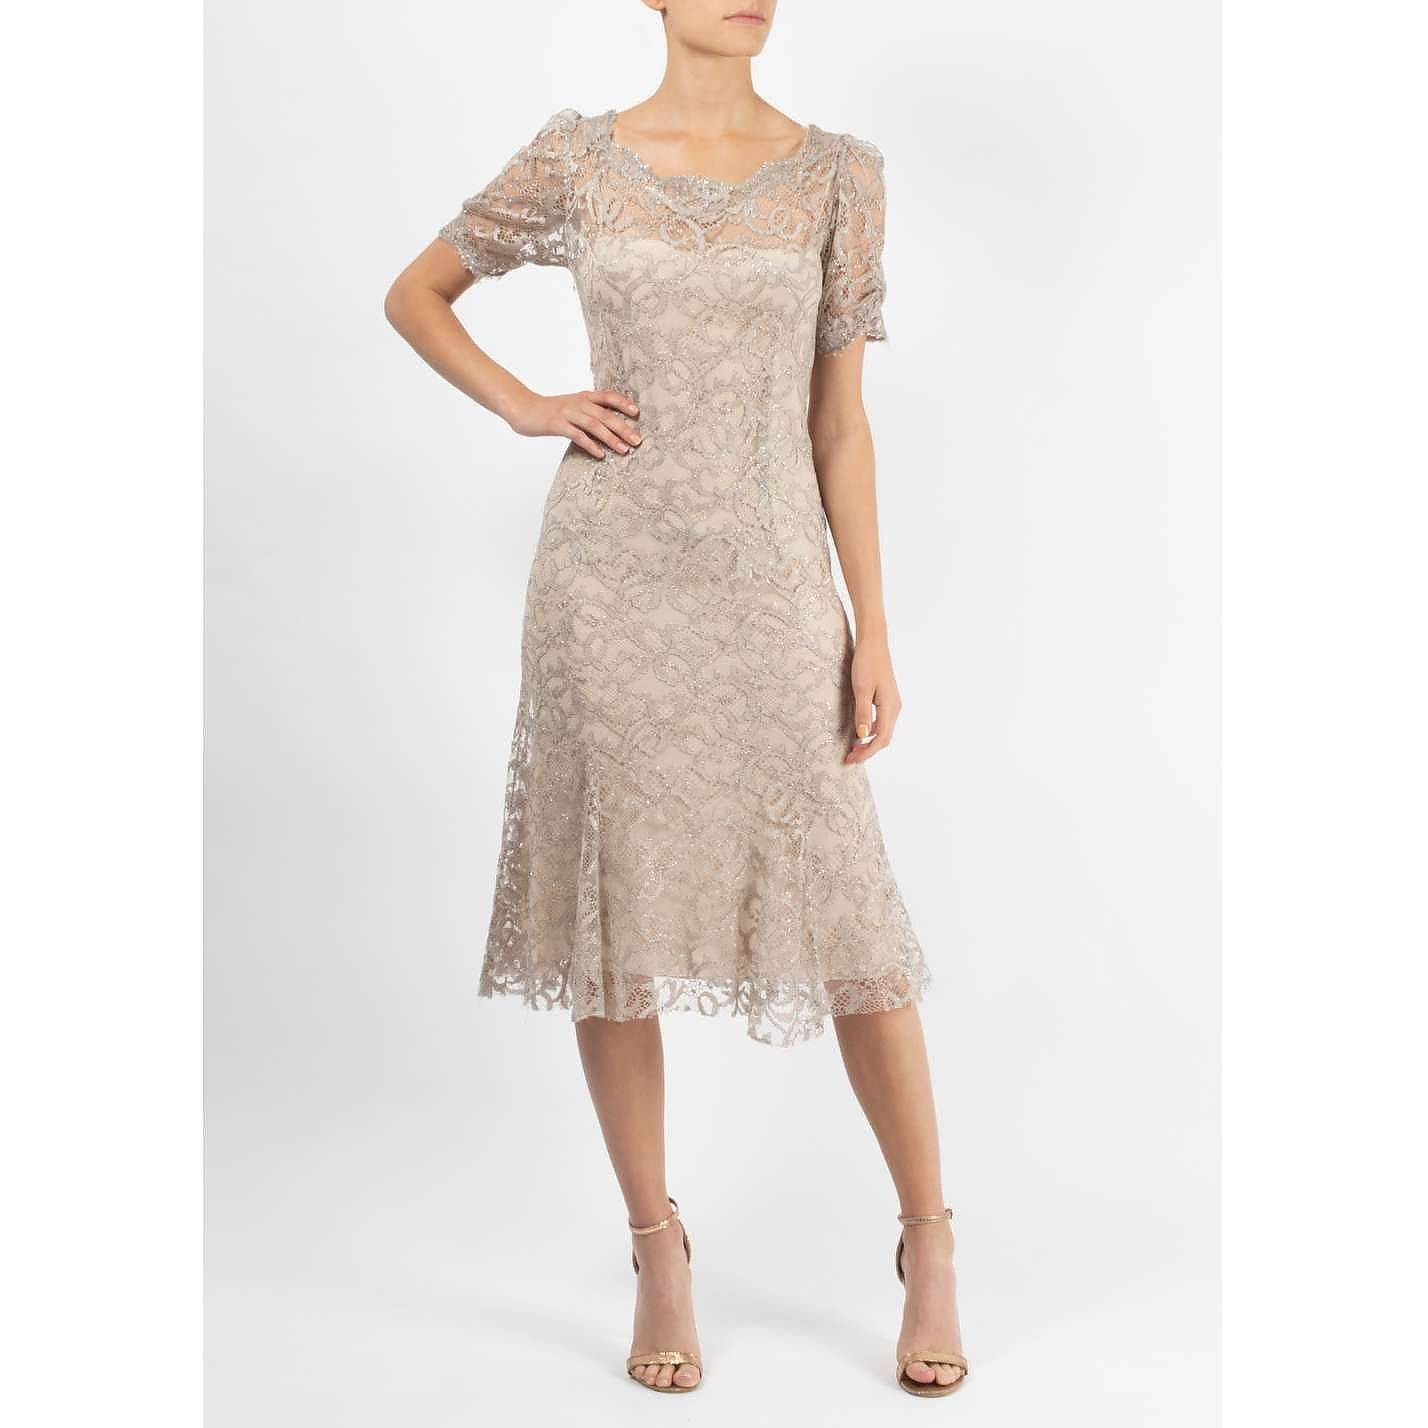 Luisa Beccaria Lace Dress